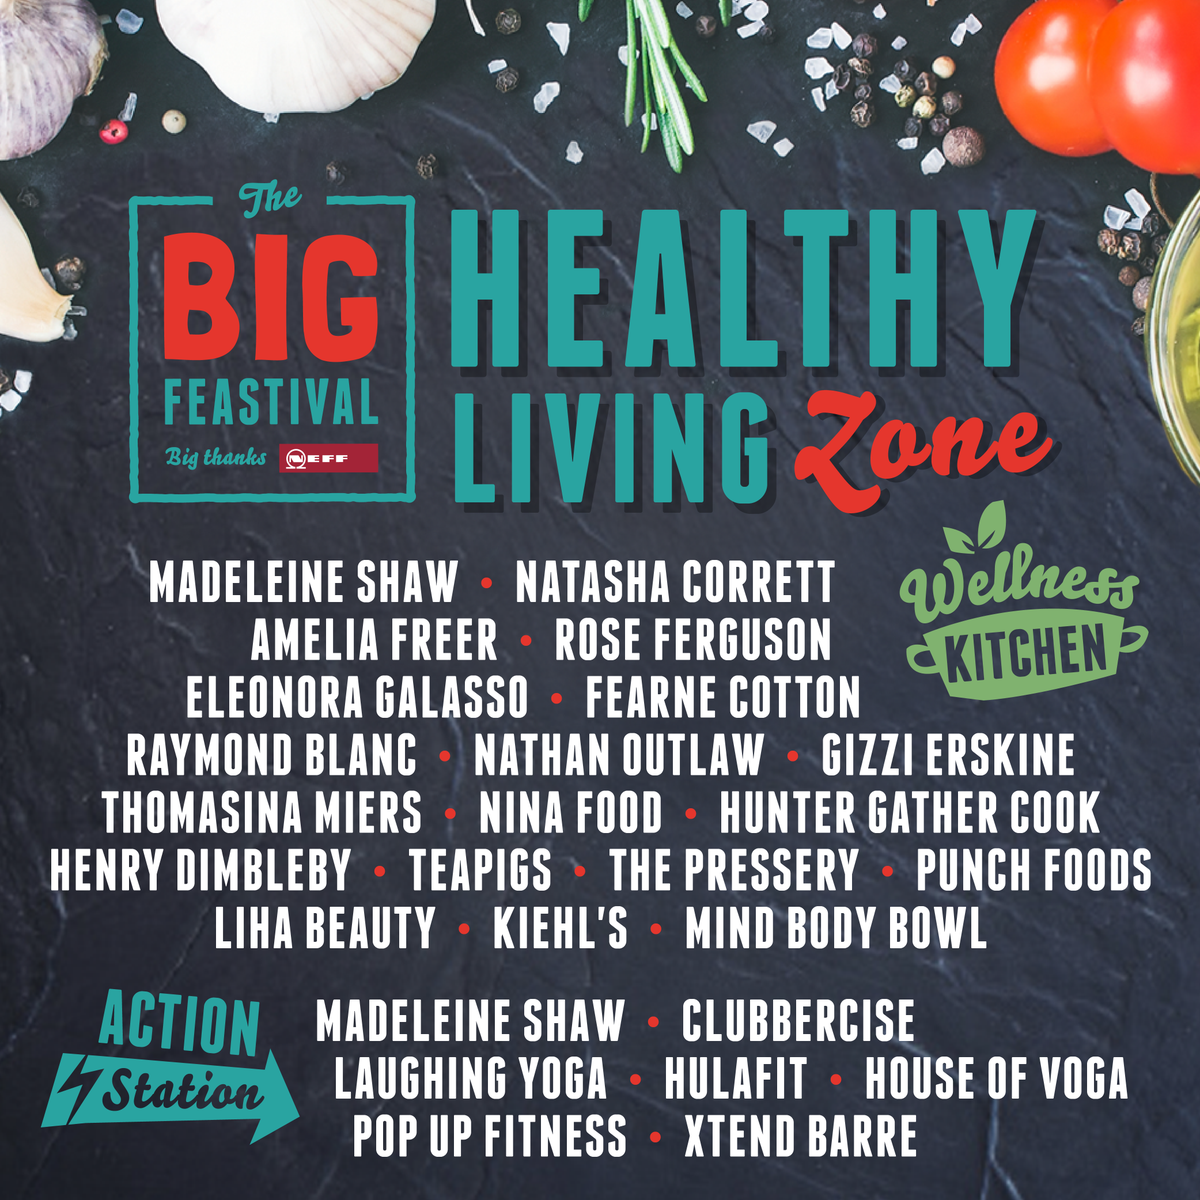 Excited to announce the line-up for my healthy living zone @thebigfeastival this year!! https://t.co/n9pFkPlhu1 https://t.co/1z2ZBT4QkE